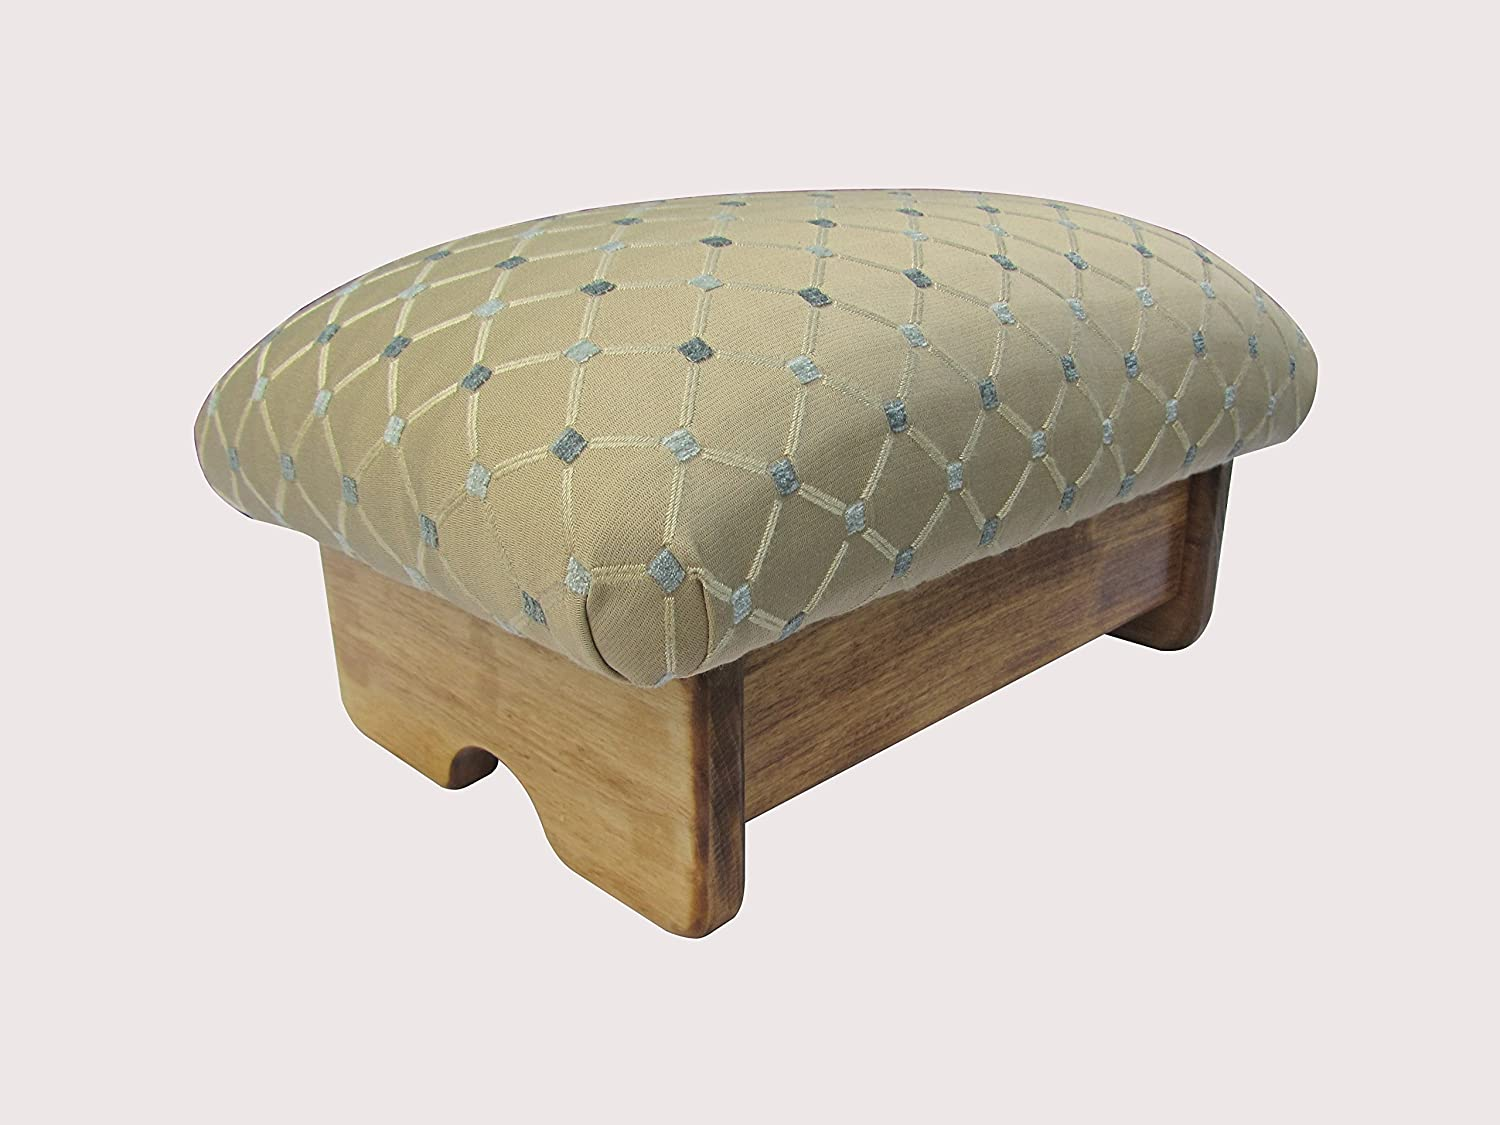 KR Ideas Padded Foot Stool Queen's Favorite (Made in The USA) (7